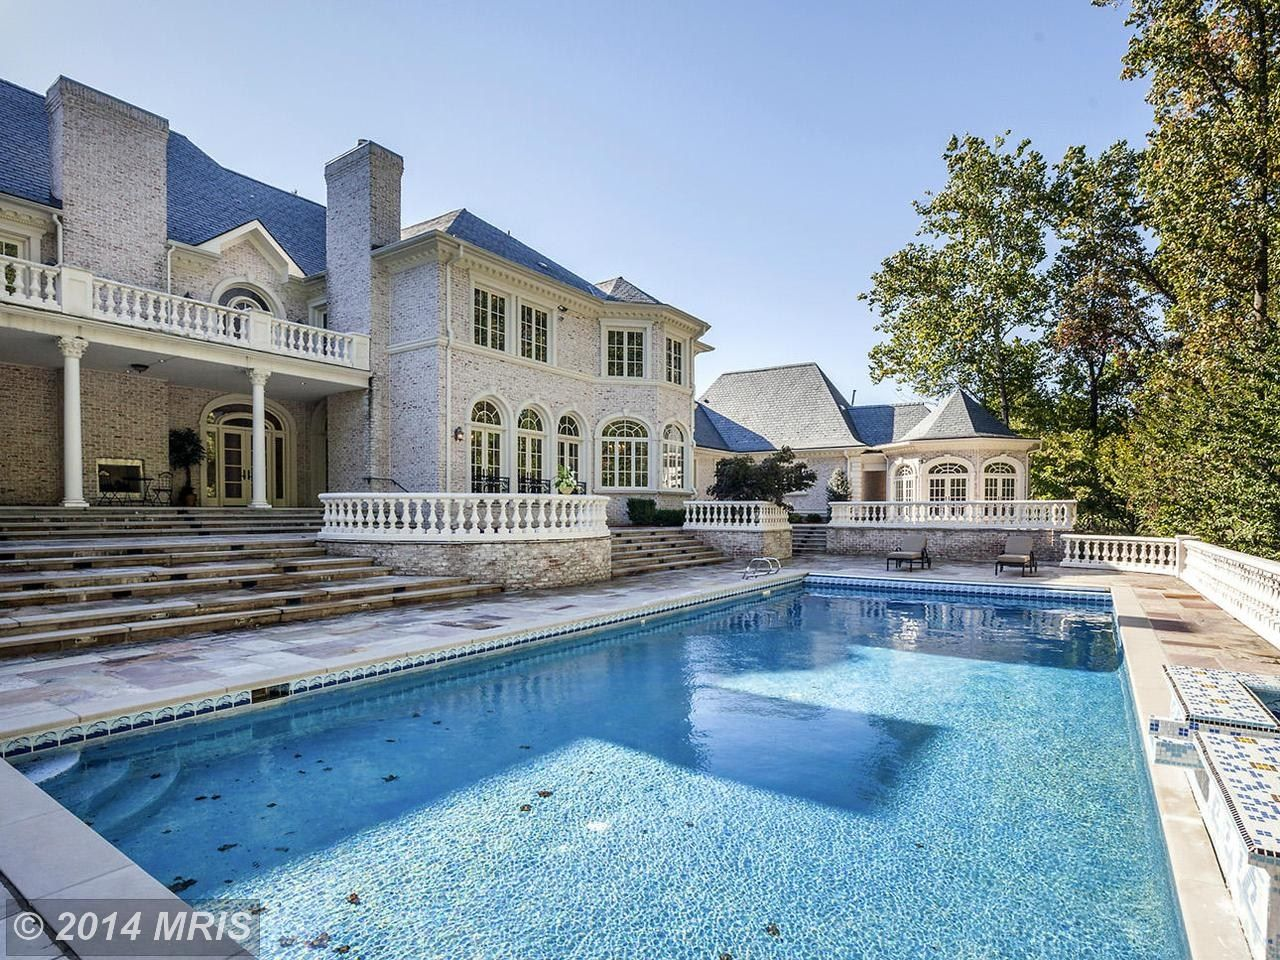 10501 CHAPEL RD, POTOMAC, MD 20854 - | cool pools & tanks ...